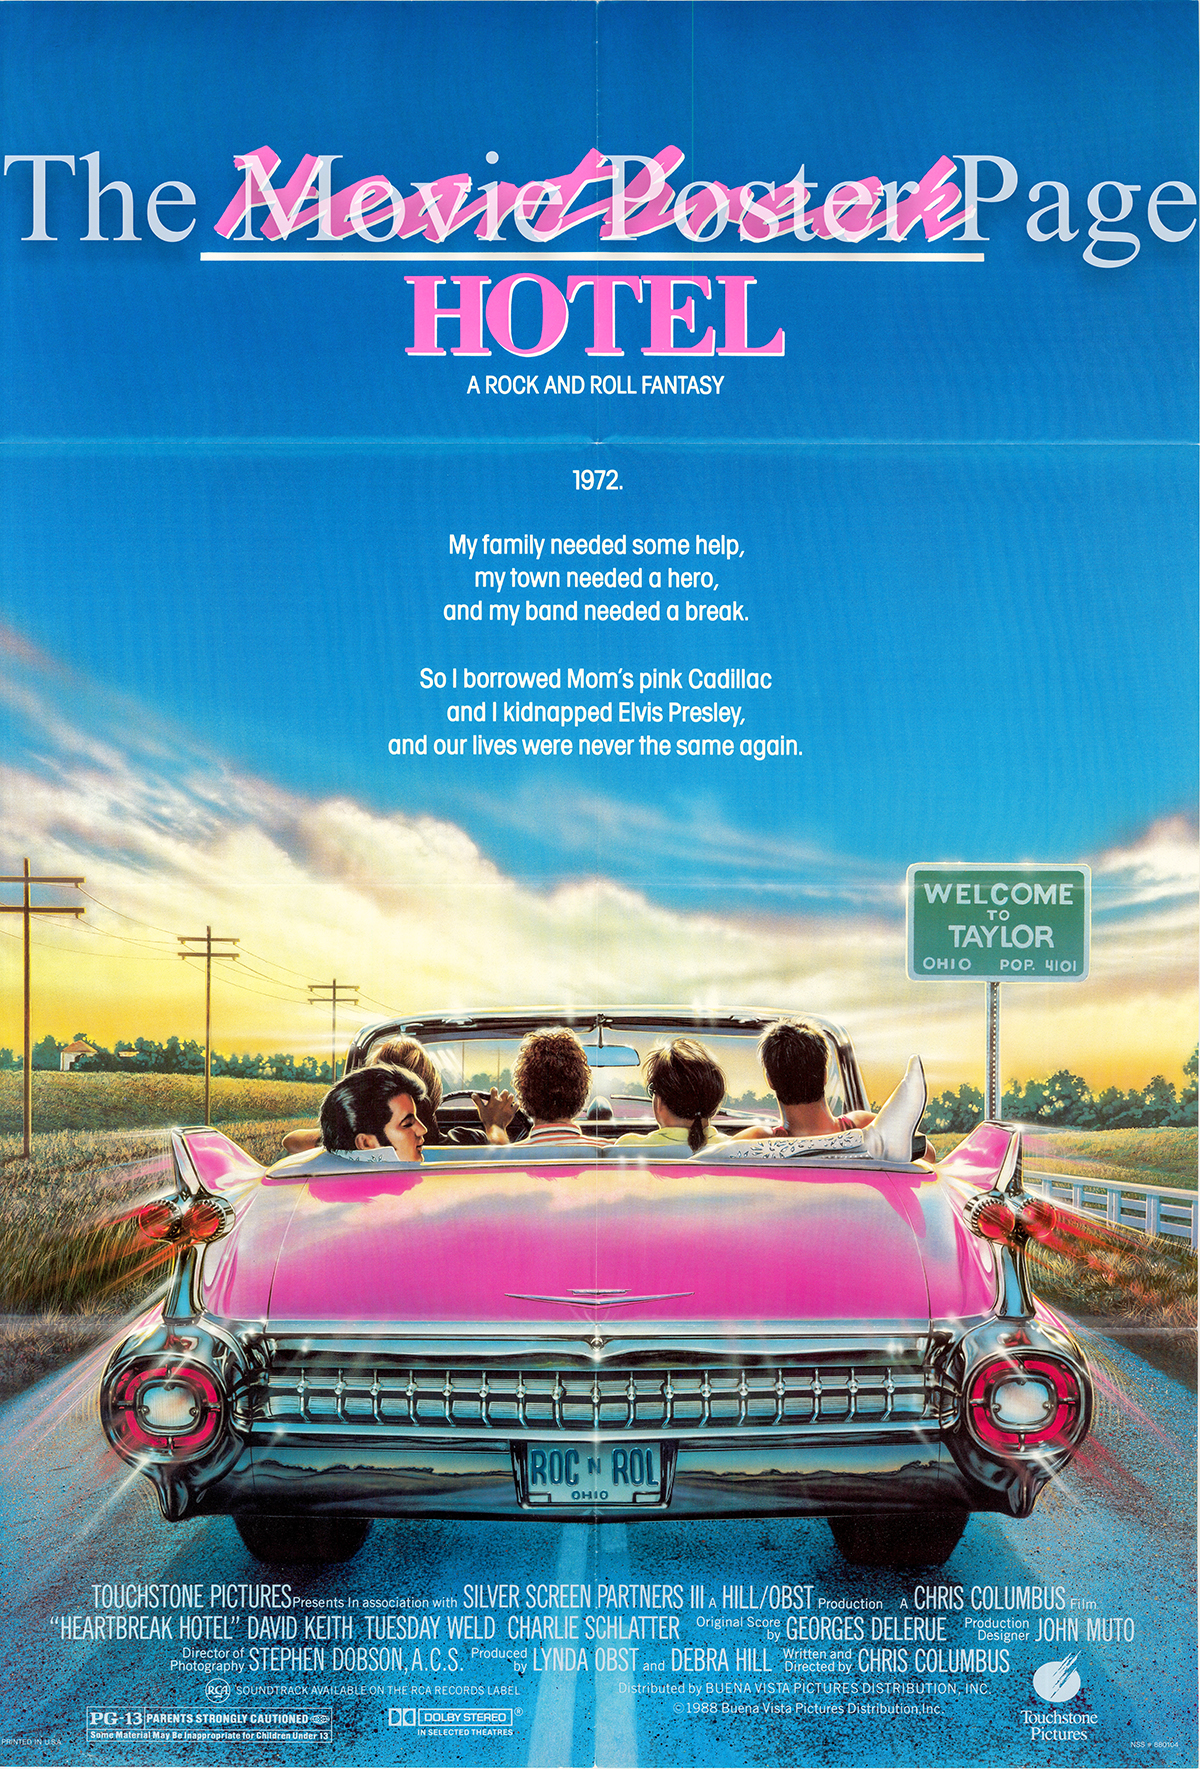 Pictured is a US one-sheet promotional poster for the 1988 Chris Columbus film Heartbreak Hotel starring David Keith.